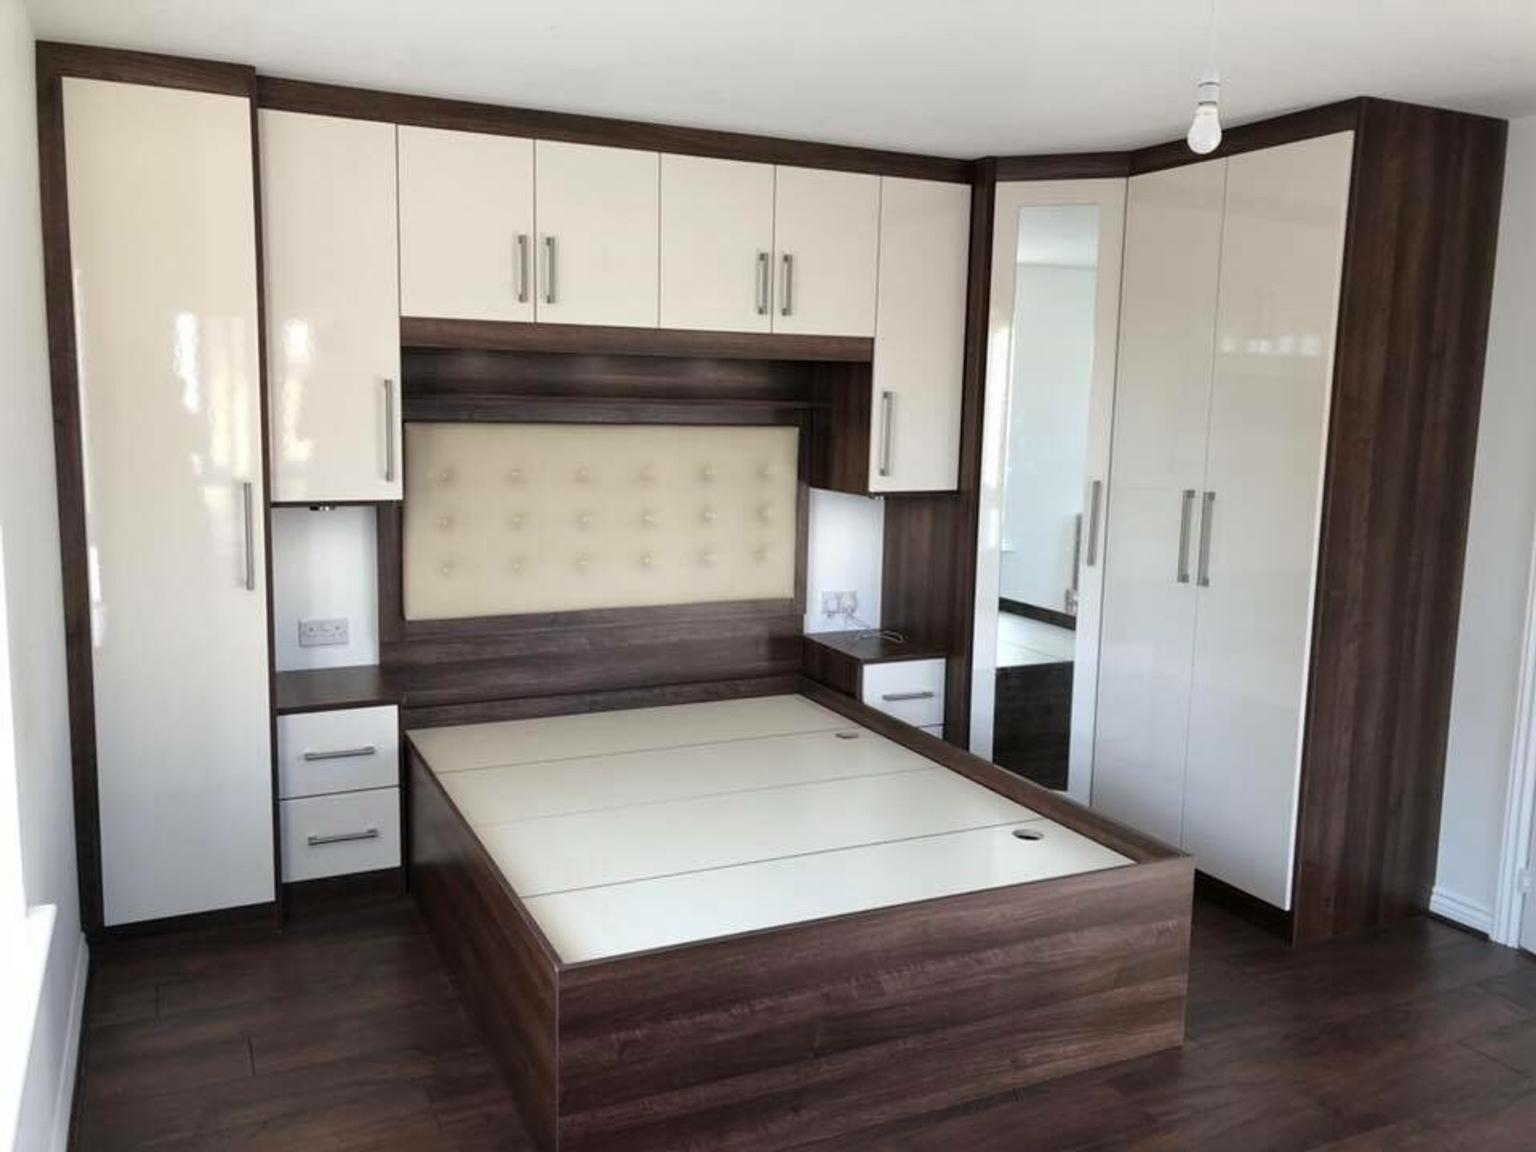 40 Off Bespoke Wardrobes Supply Fittings In Np Newport For 1 500 00 For Sale Shpock